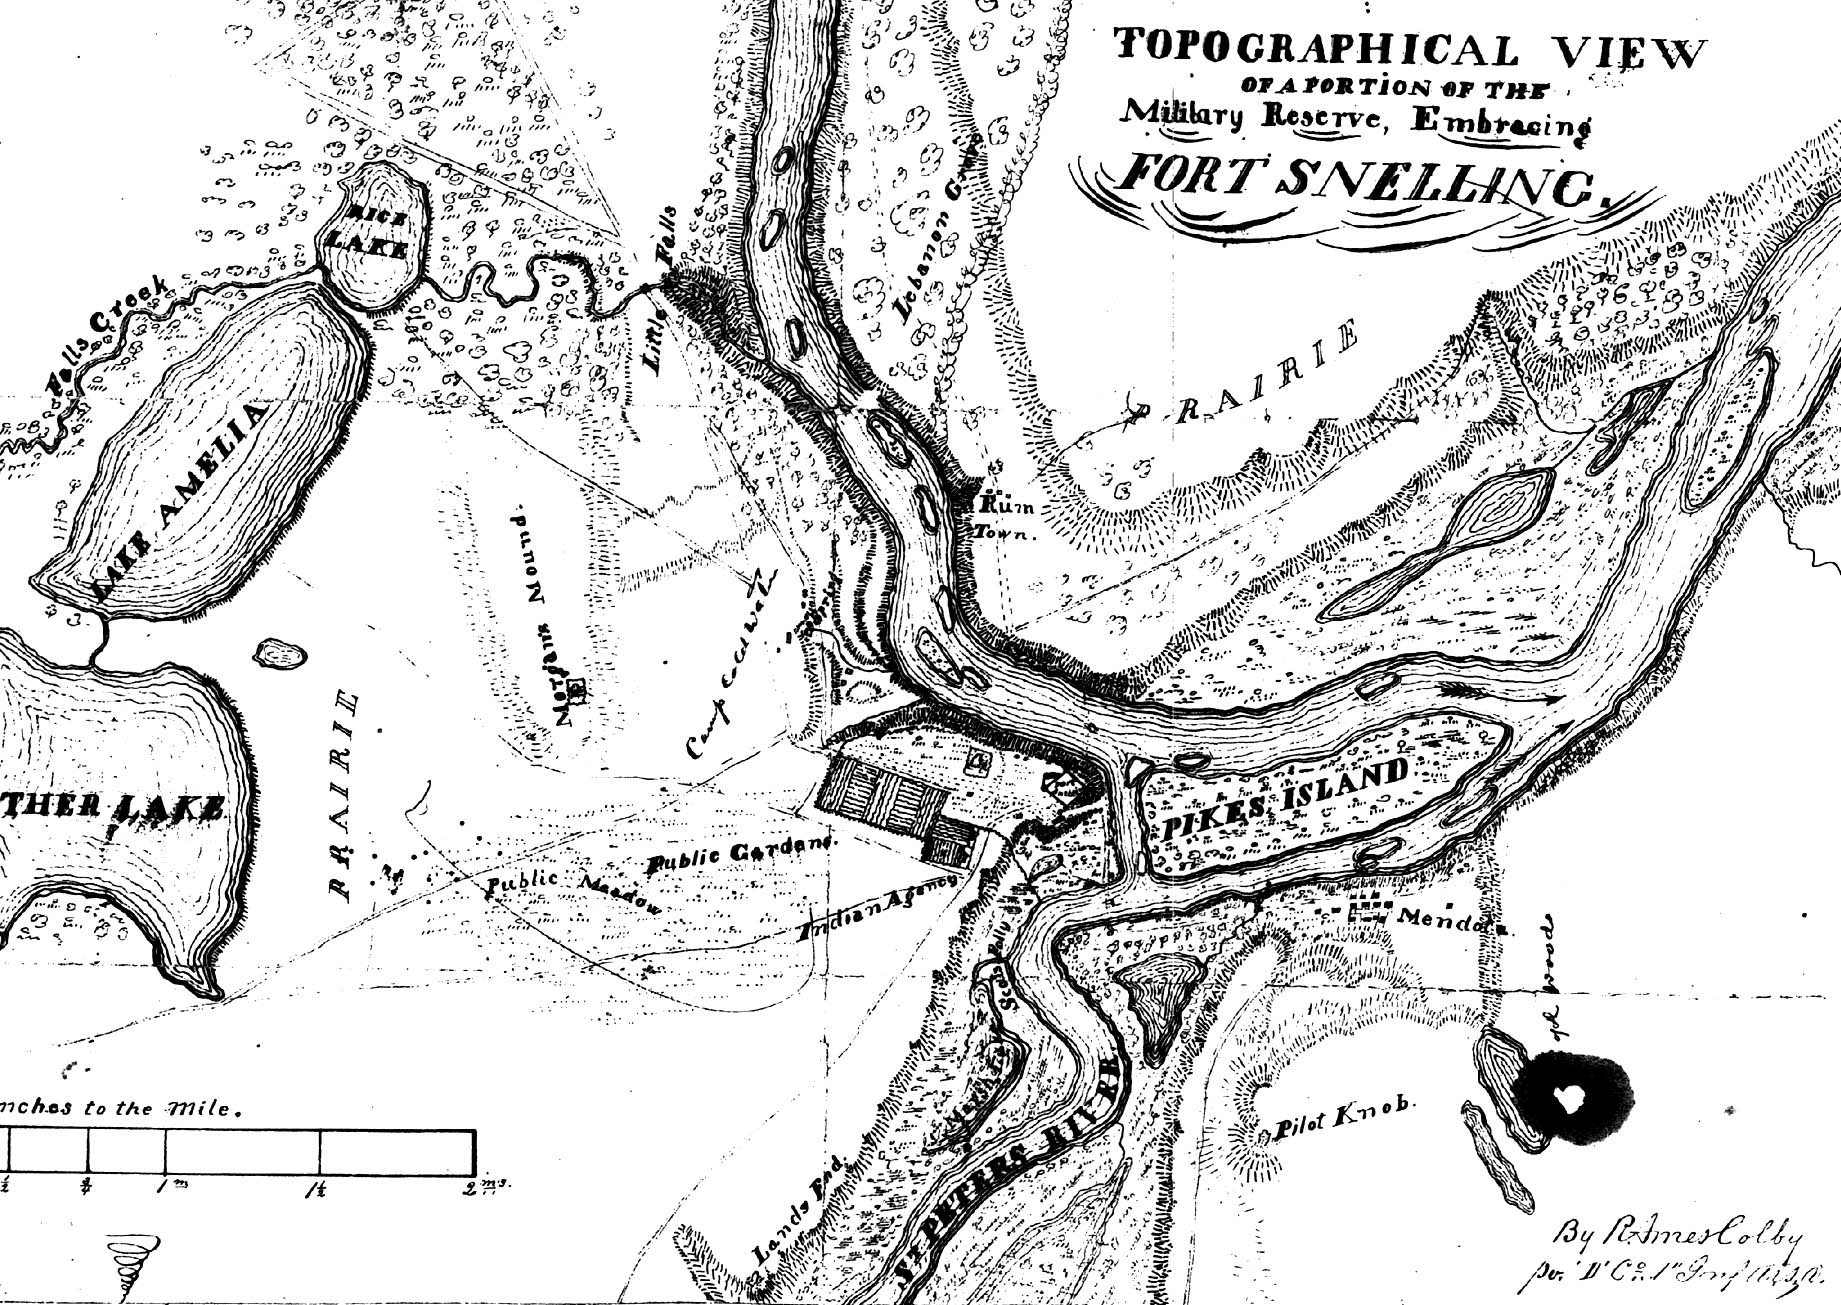 Colby Map 1850